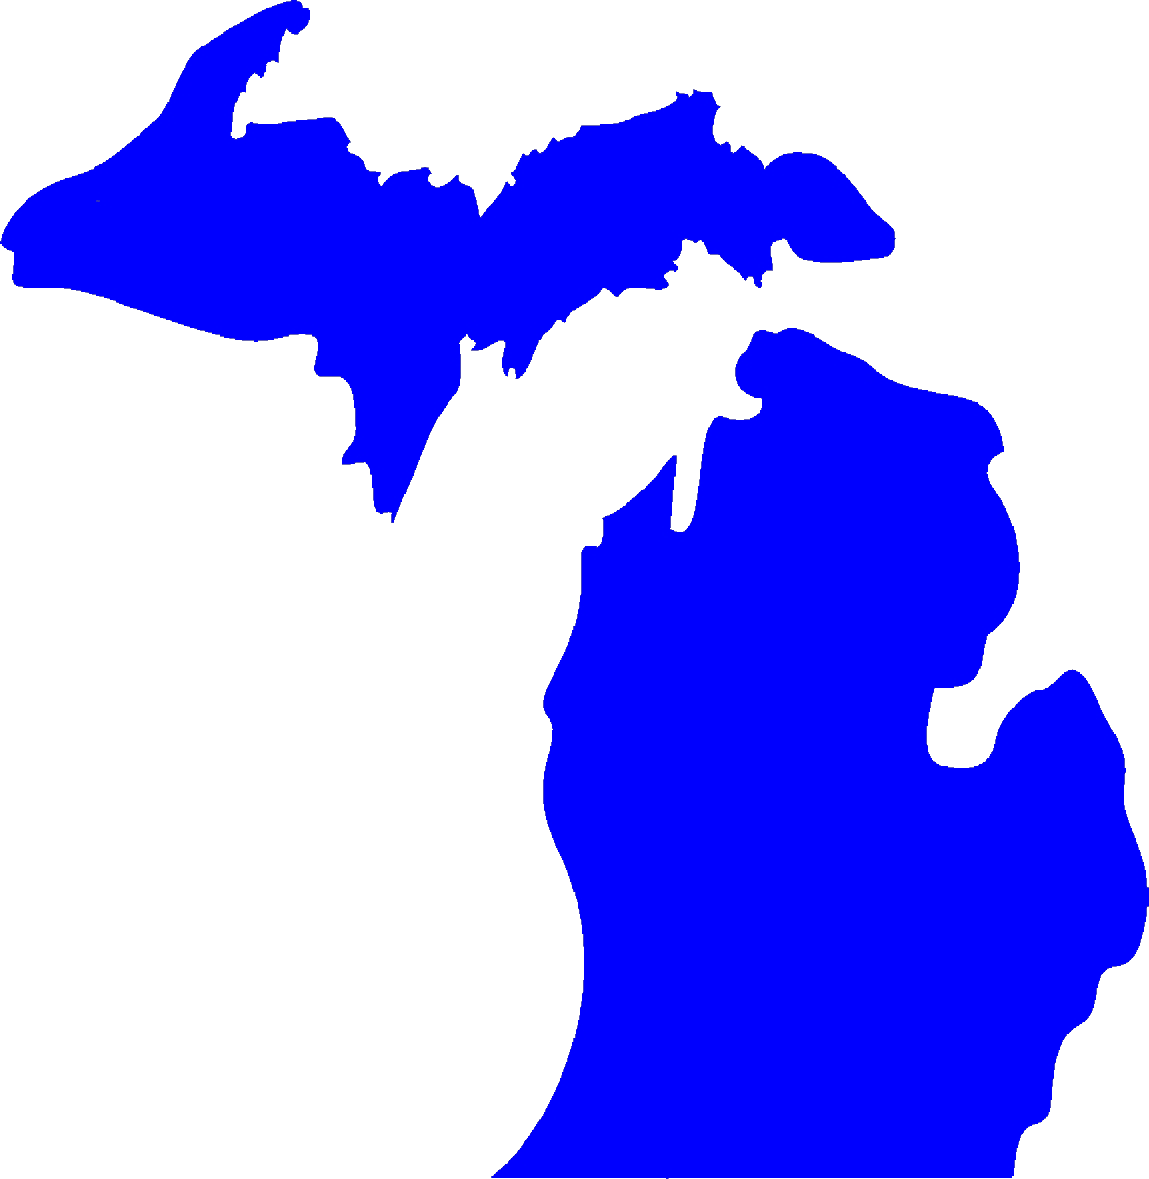 Michigan clipart #11, Download drawings